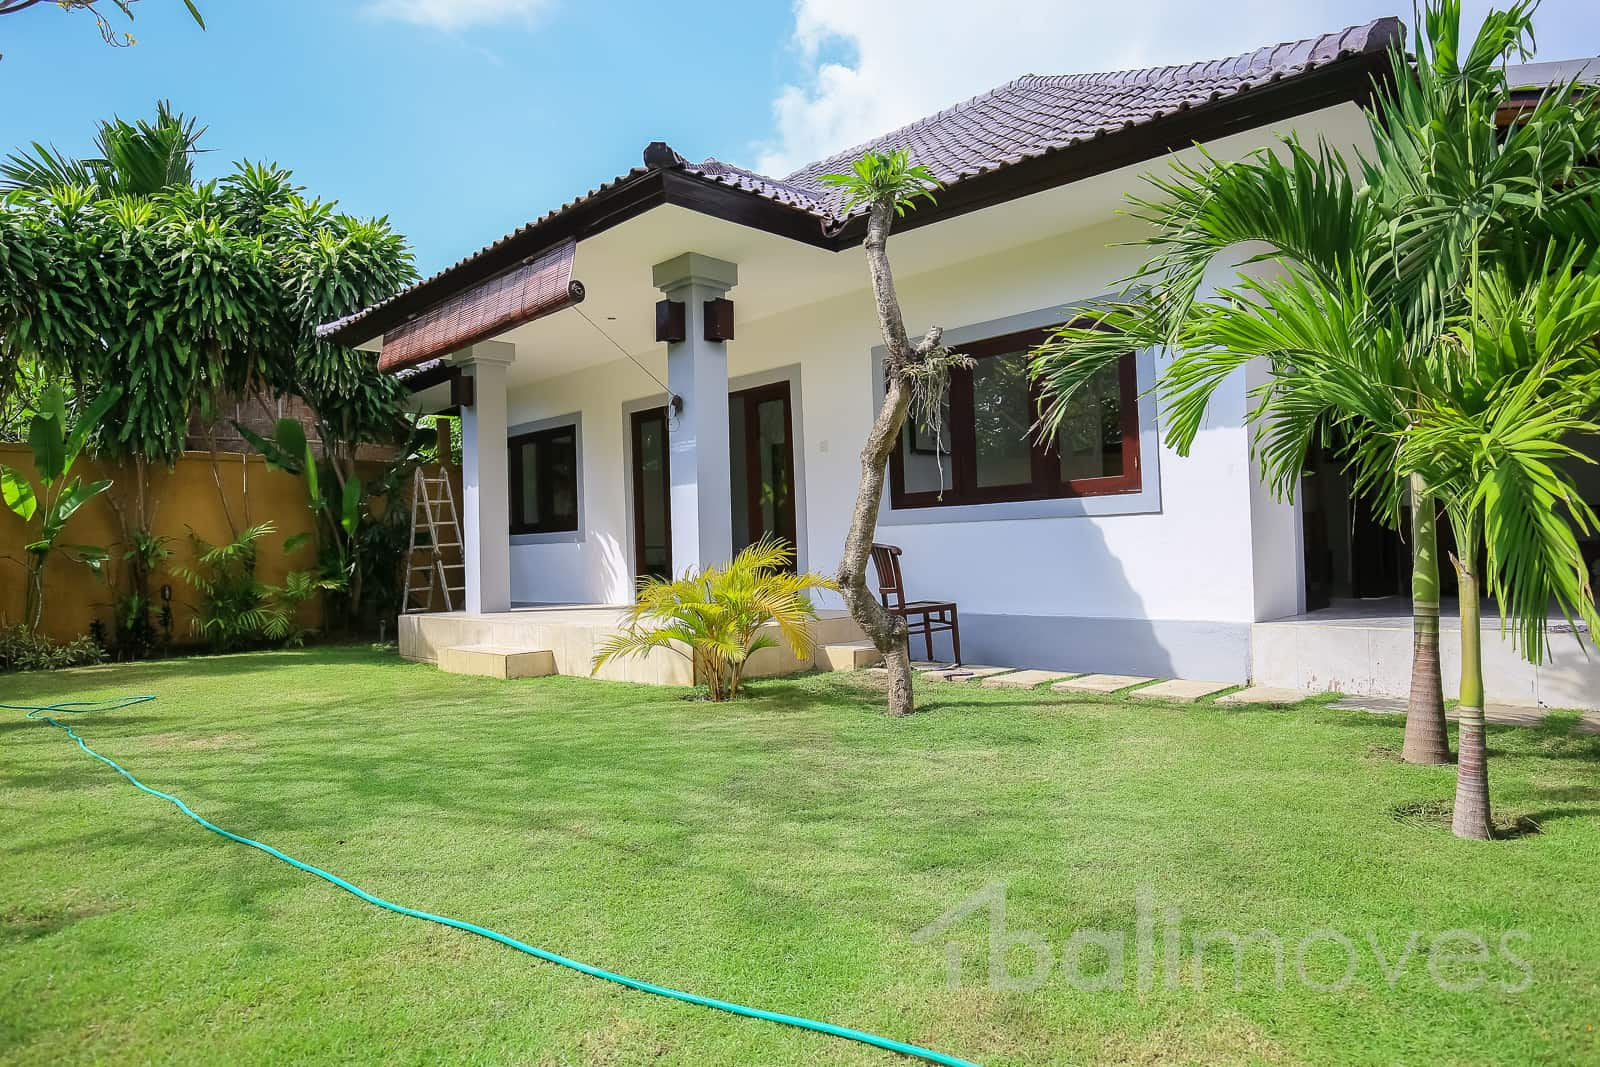 Two bedroom house with beautiful garden sanur 39 s local for Two bedroom house